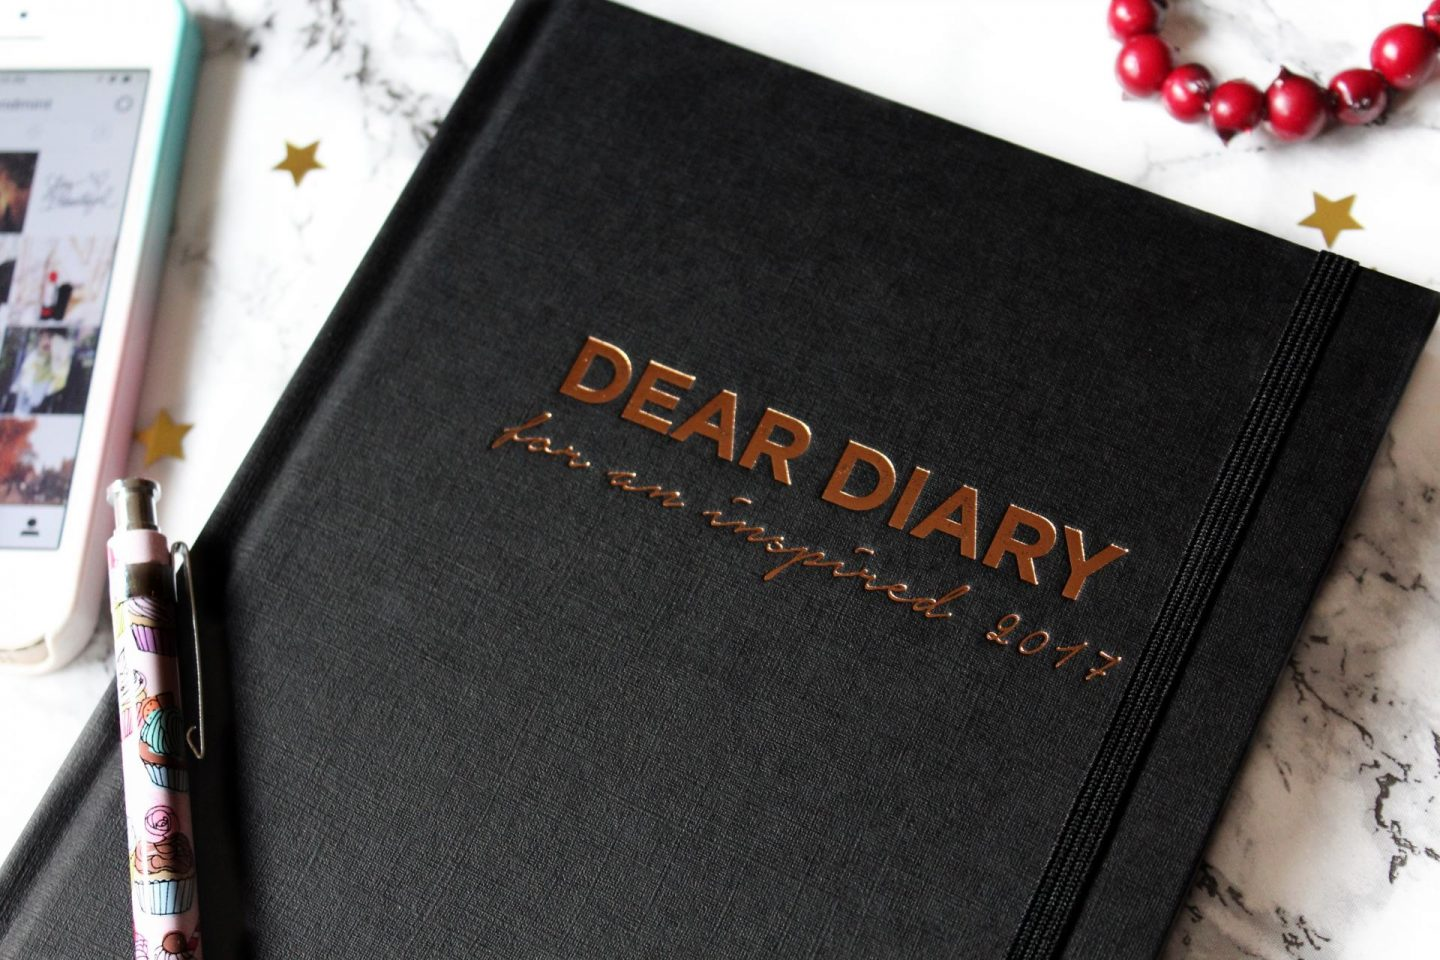 Dear Diary Planner, How To Stick To Your Goals  - Miel and Mint blog